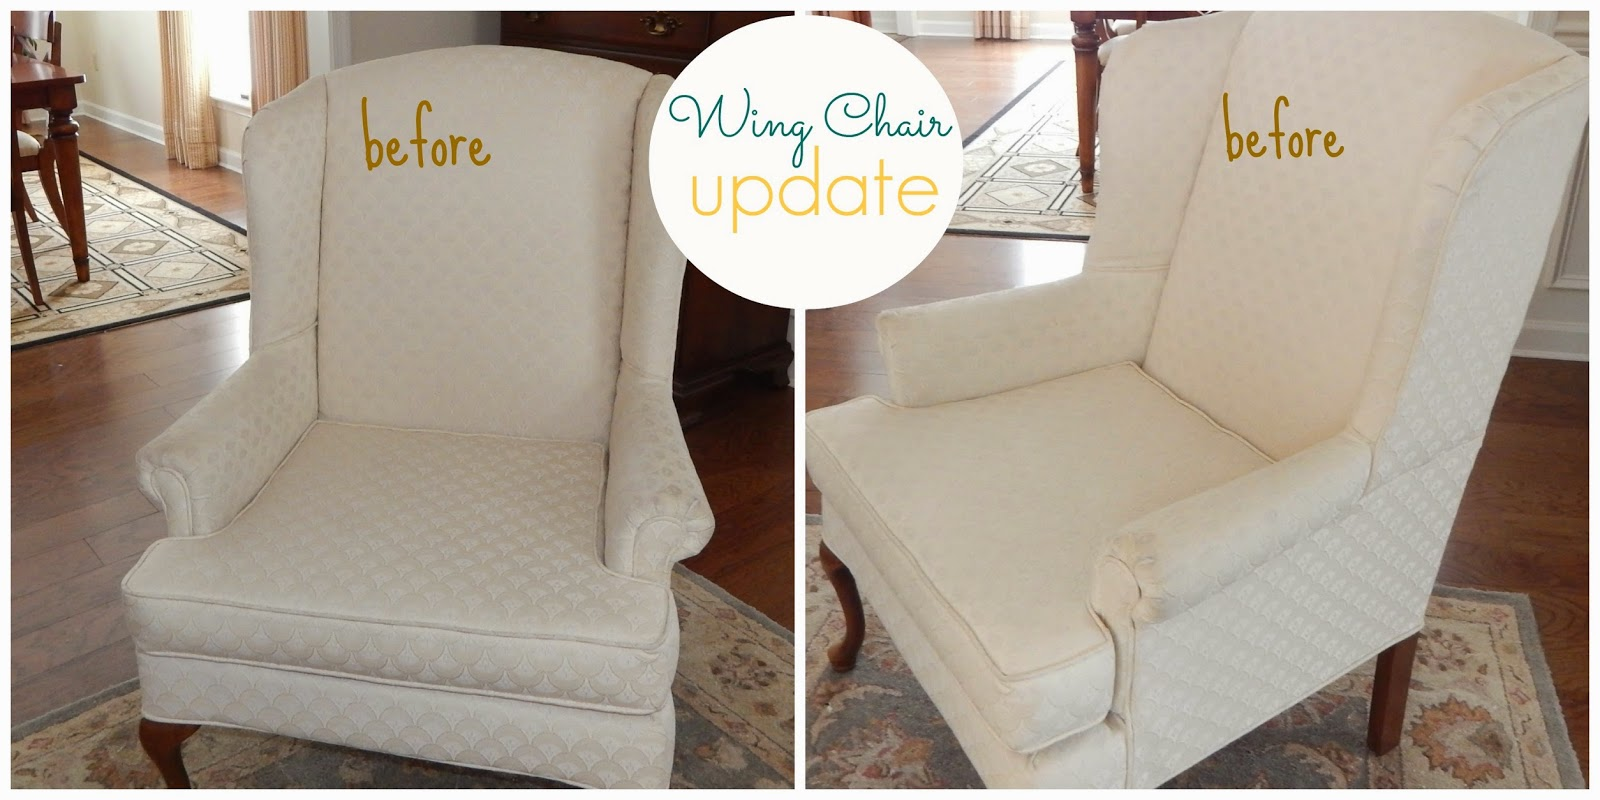 pam morris sews printed linen slipcover for a wing chair. Black Bedroom Furniture Sets. Home Design Ideas